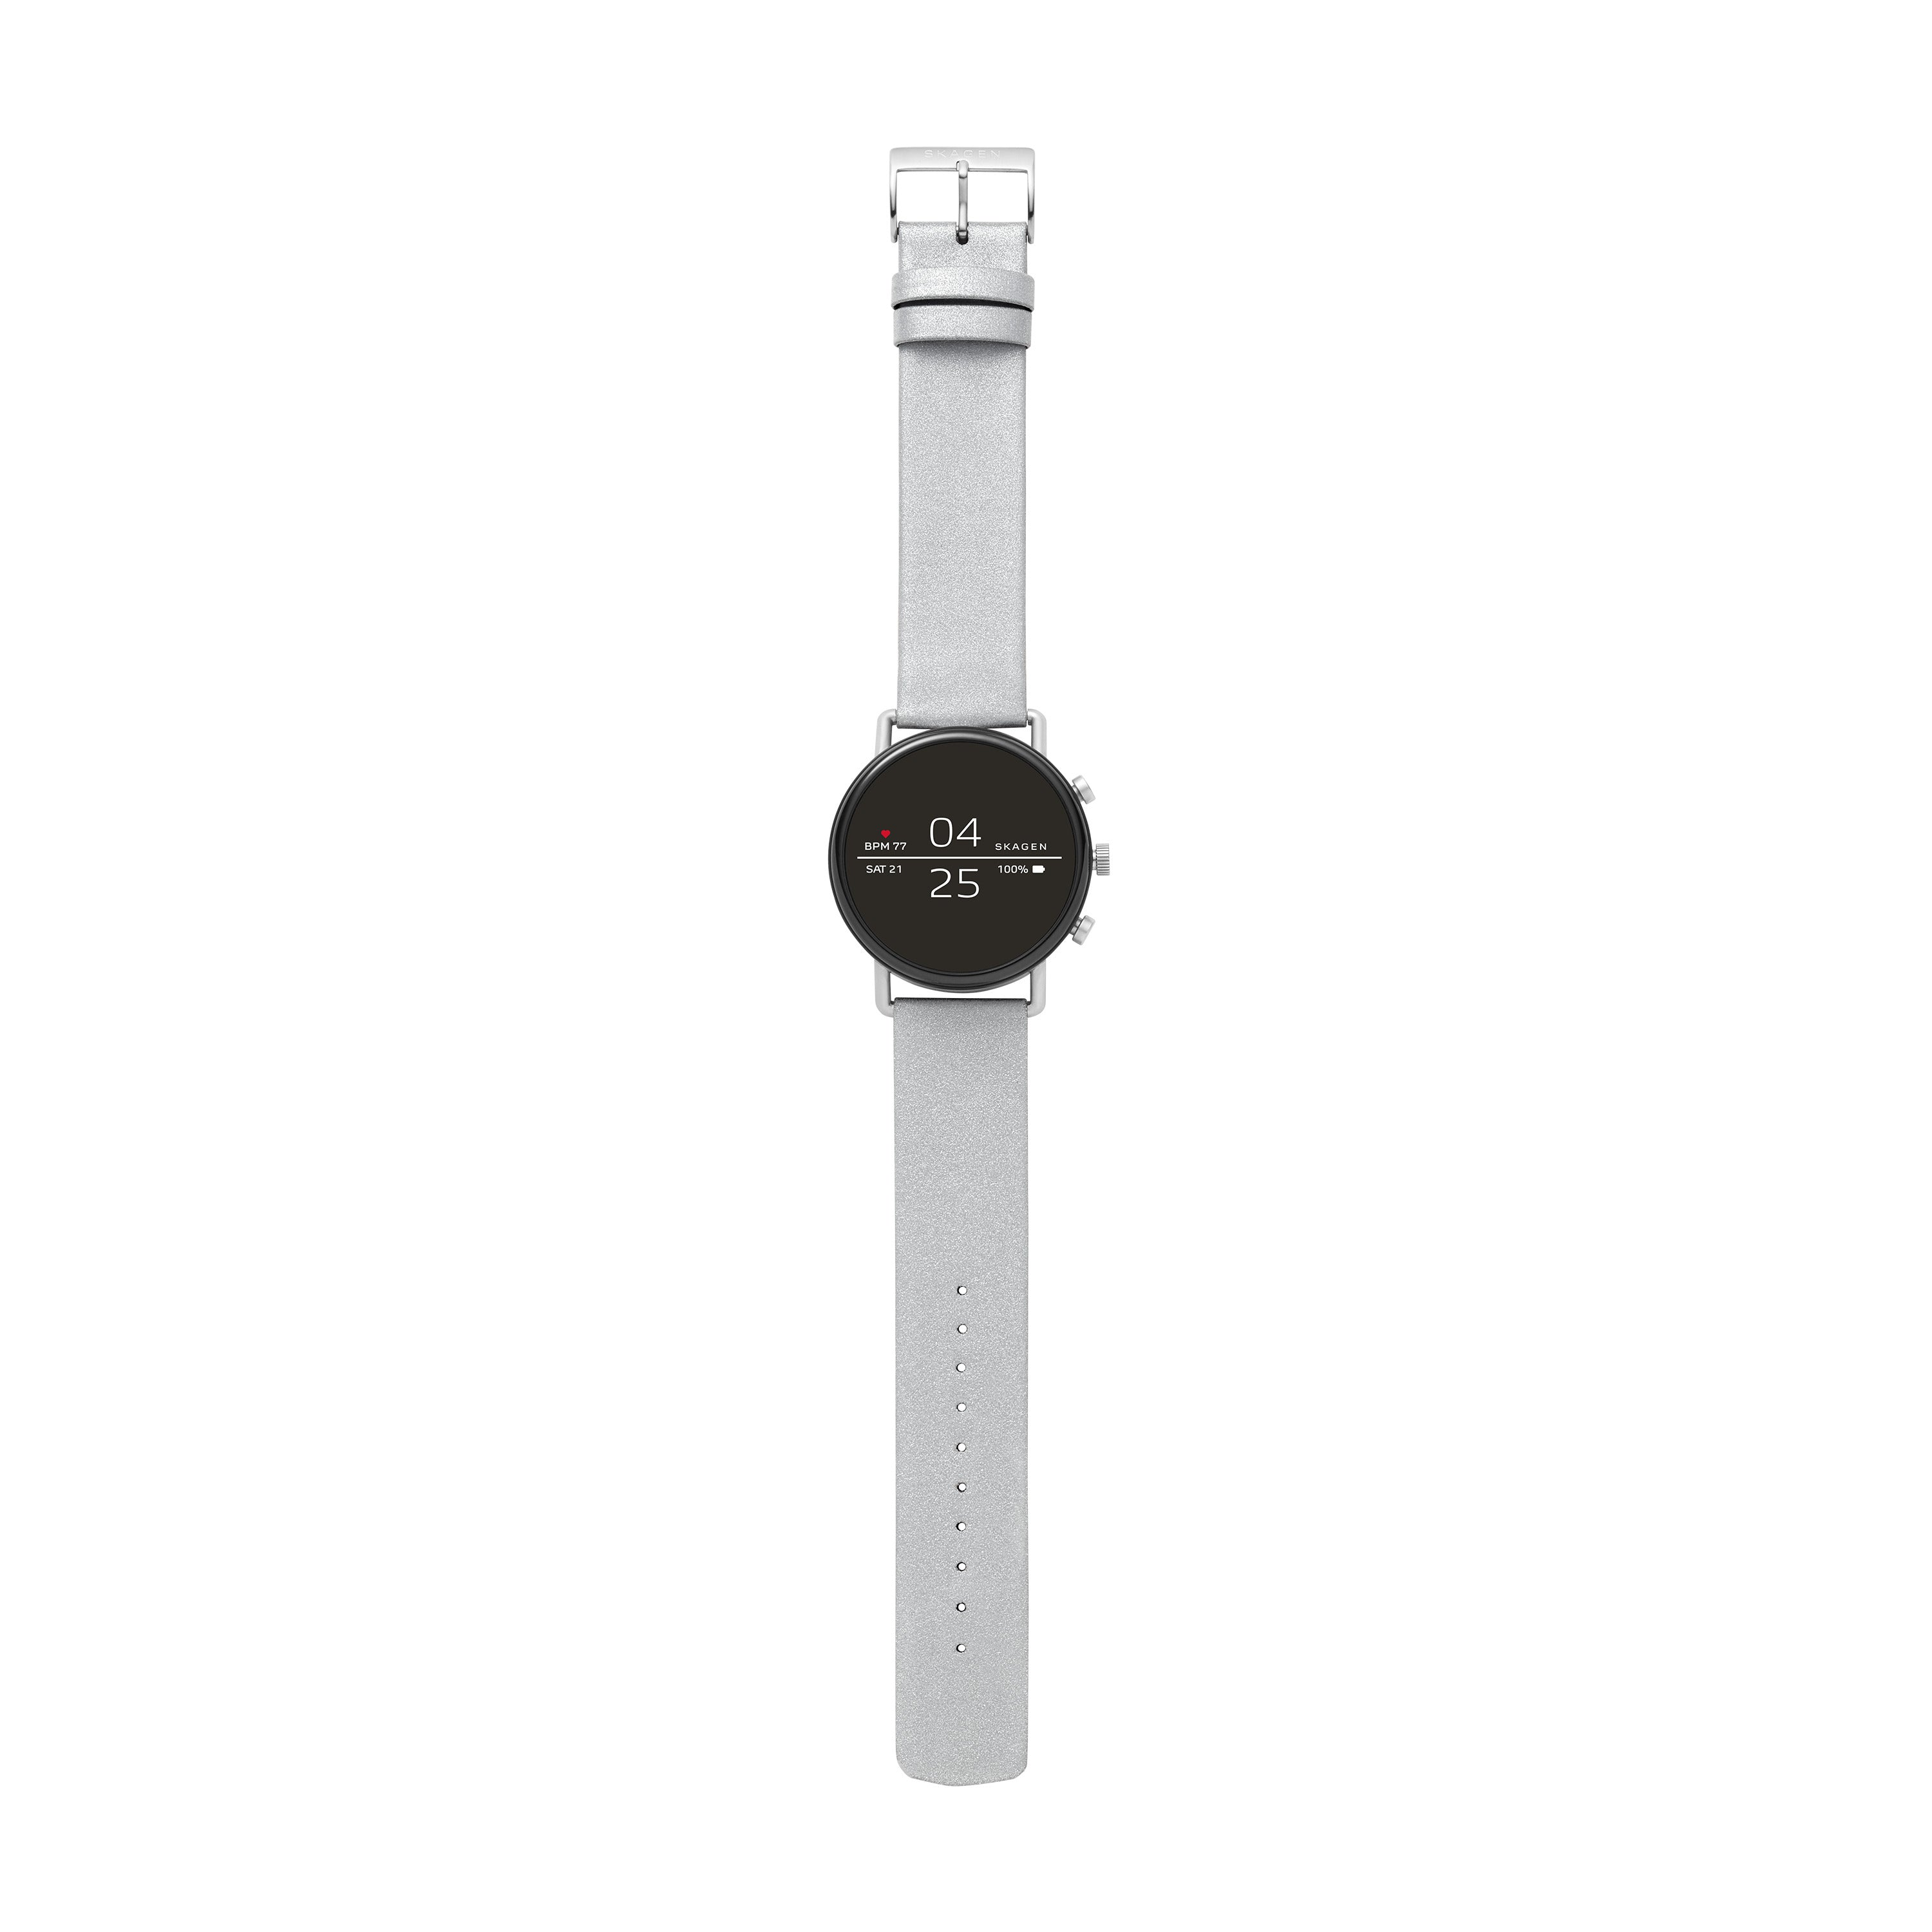 【NEW】Smartwatch Falster 2 Reflective Silver Strap